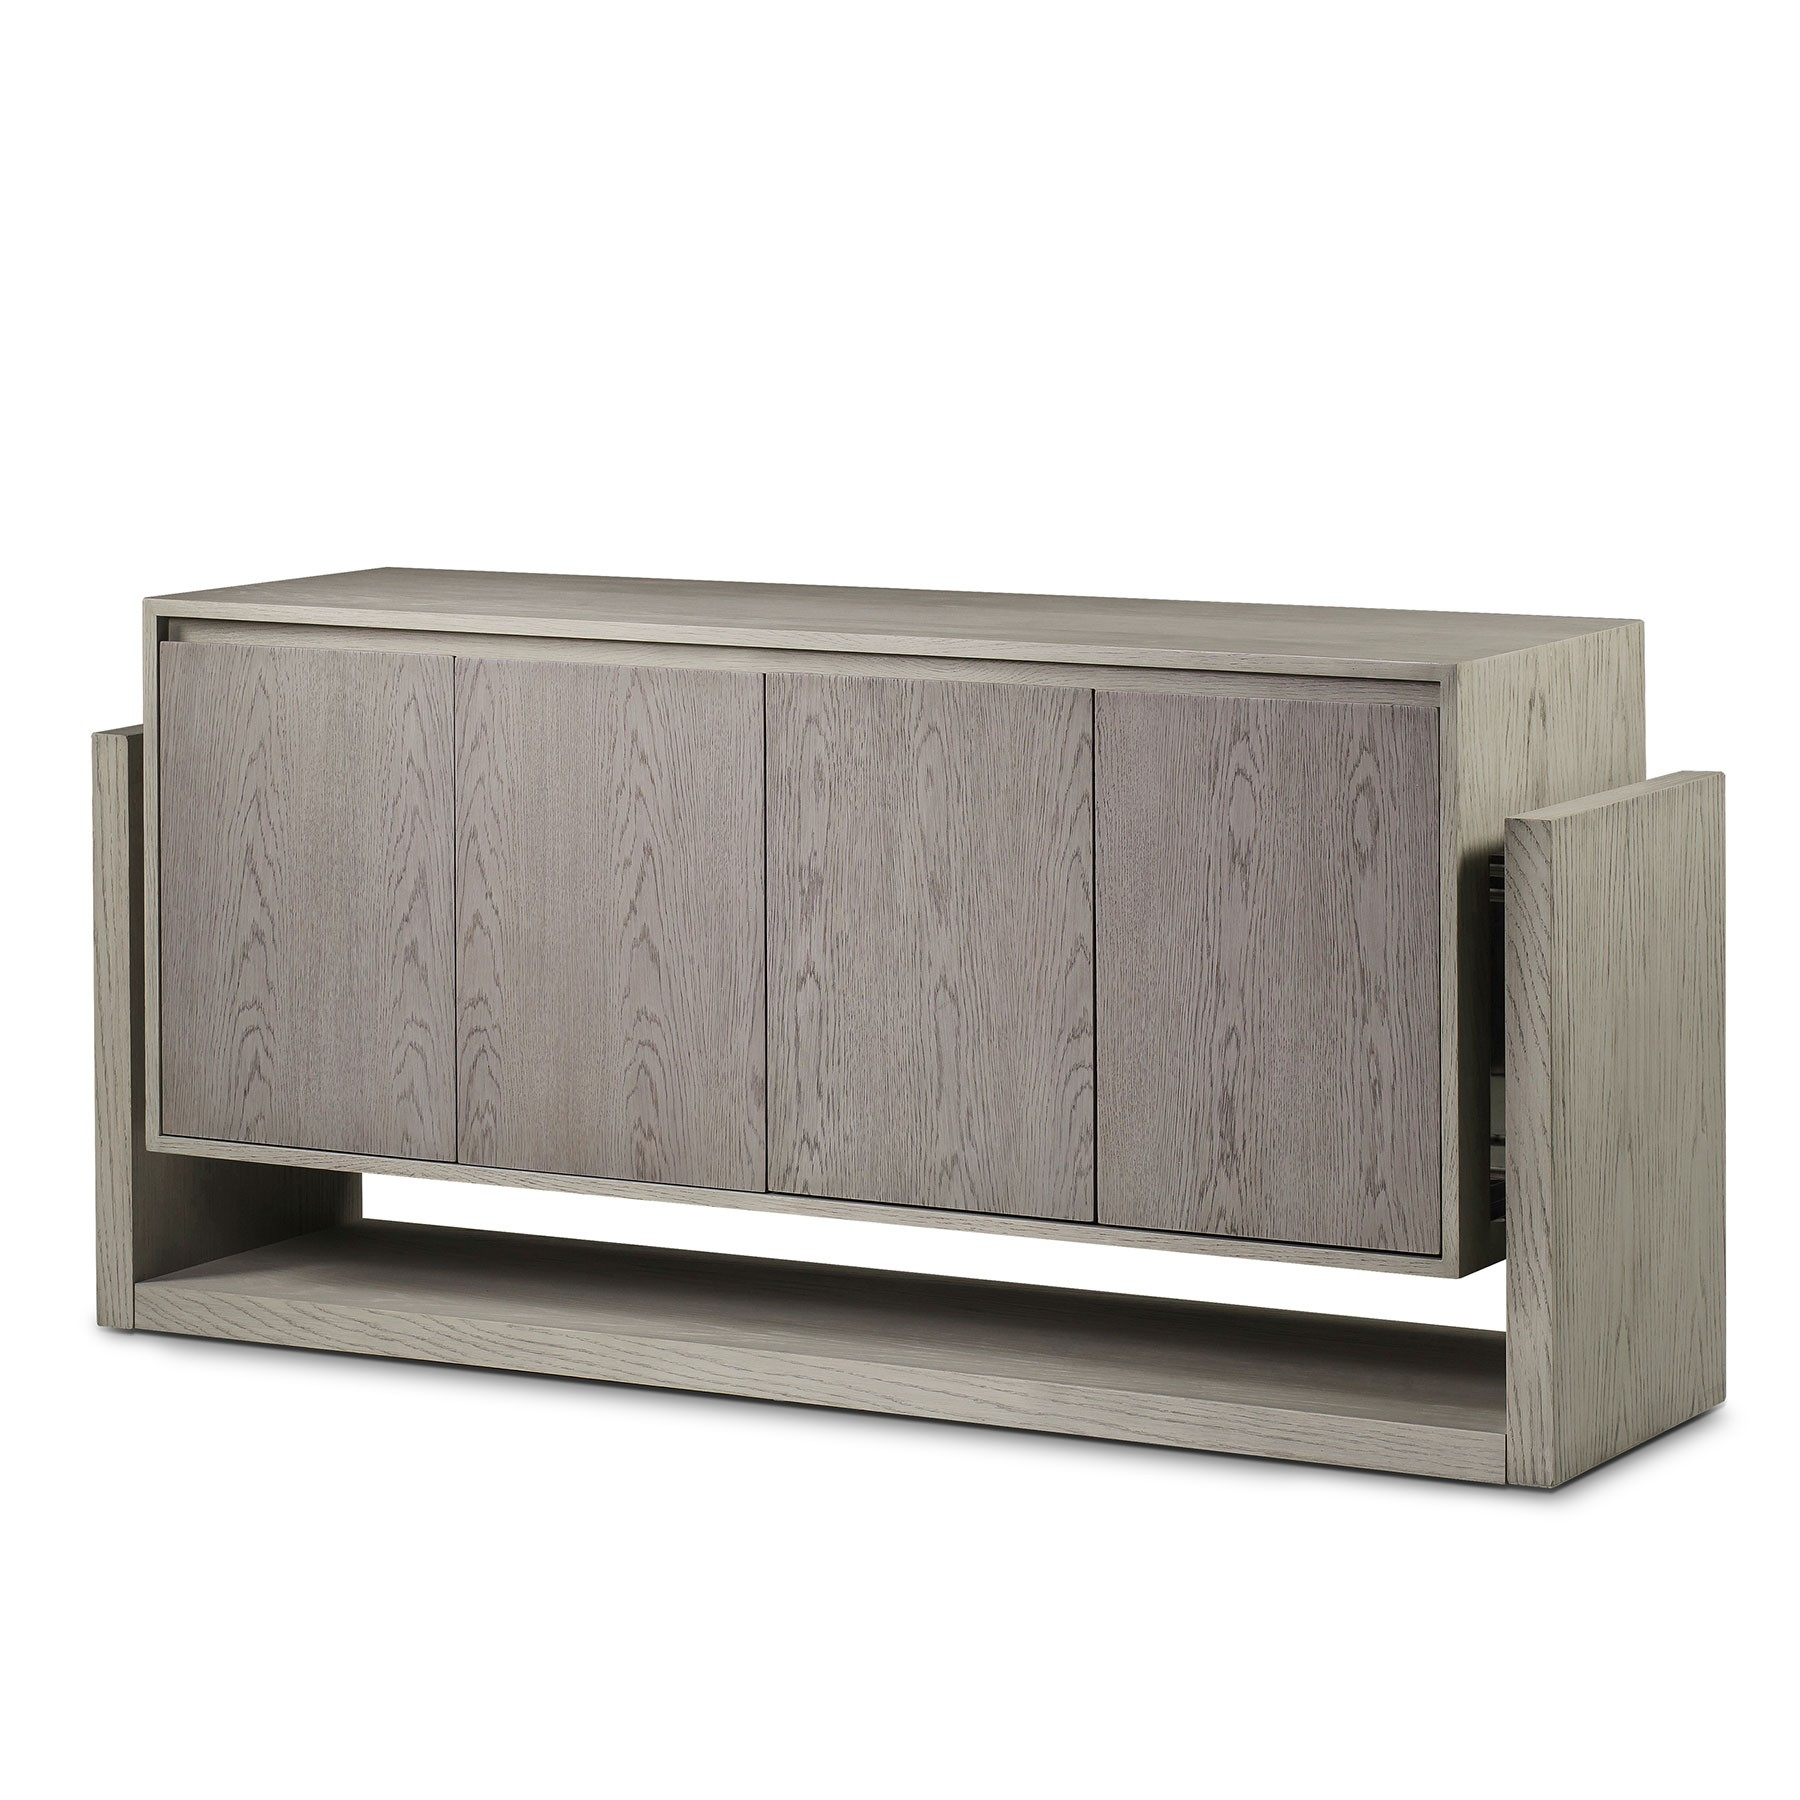 Newman 4 Door Sideboard   Whitewashed | Resource Decor 1404025 Throughout 4 Door 3 Drawer White Wash Sideboards (Photo 18 of 30)